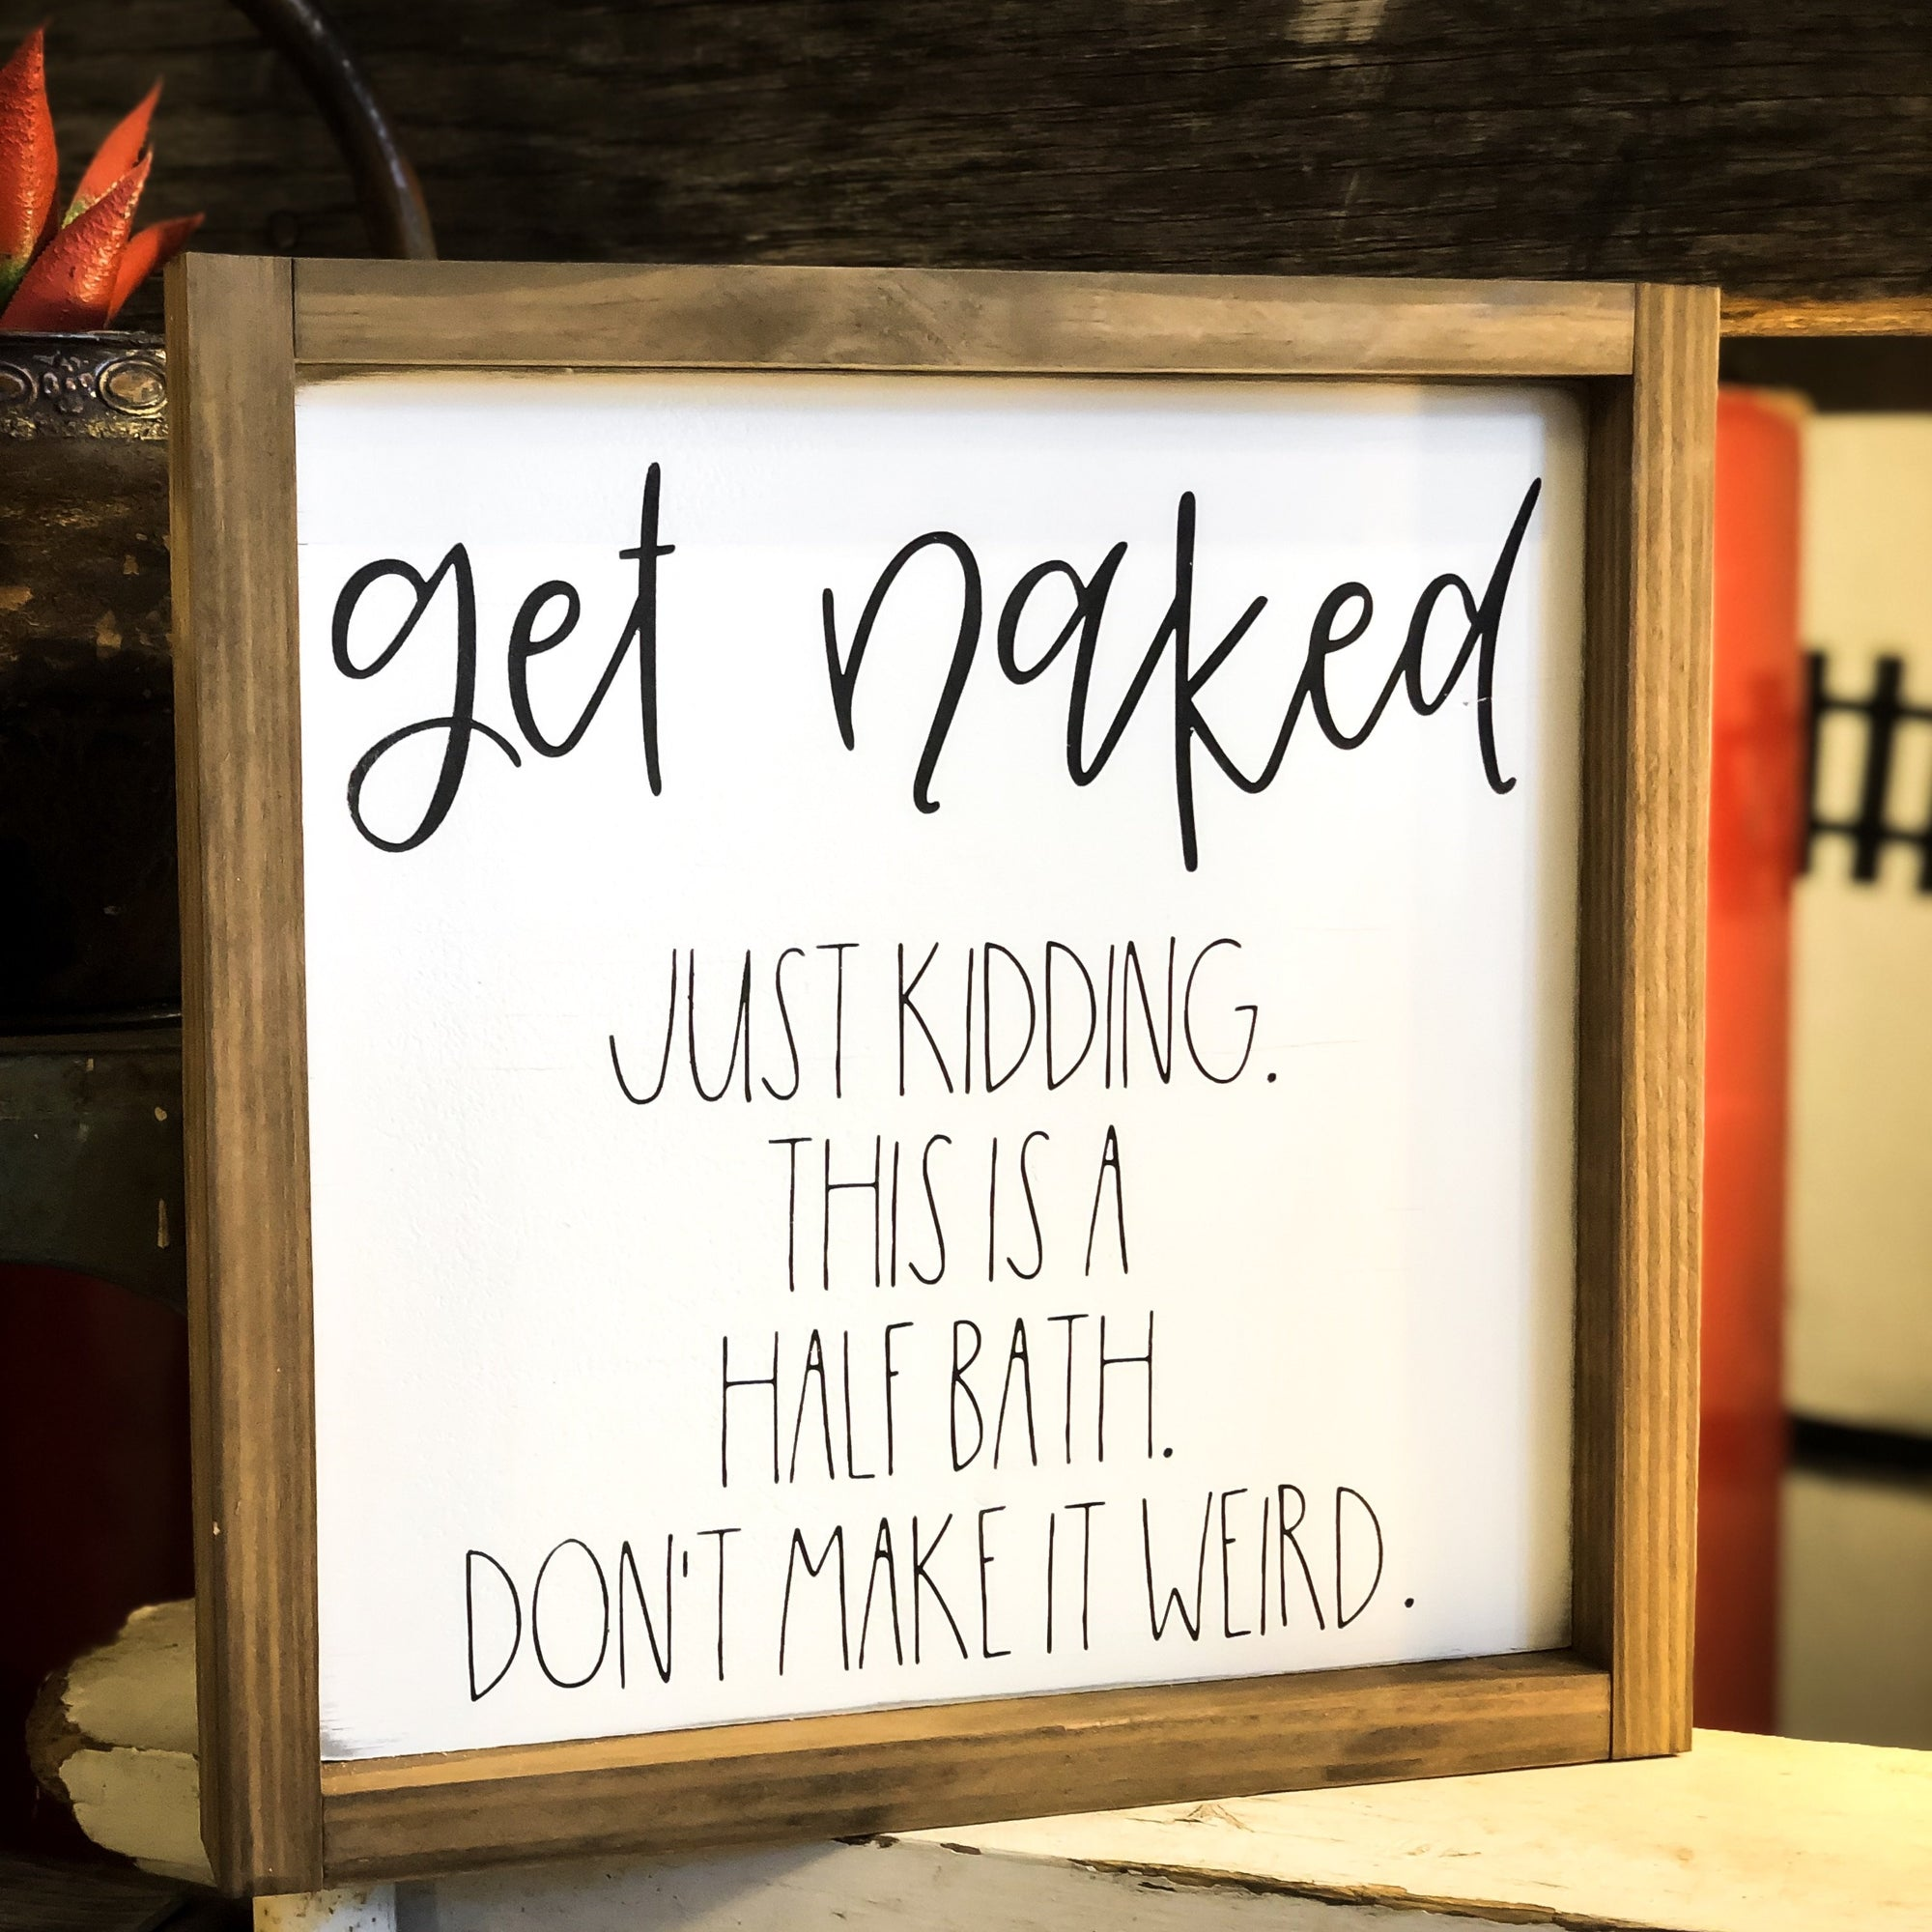 Buy Funny Get Naked Just Kidding Half Bath Sign from Walking Pants Curiosities, the Most un-General Gift Store in Downtown Memphis, Tennessee!